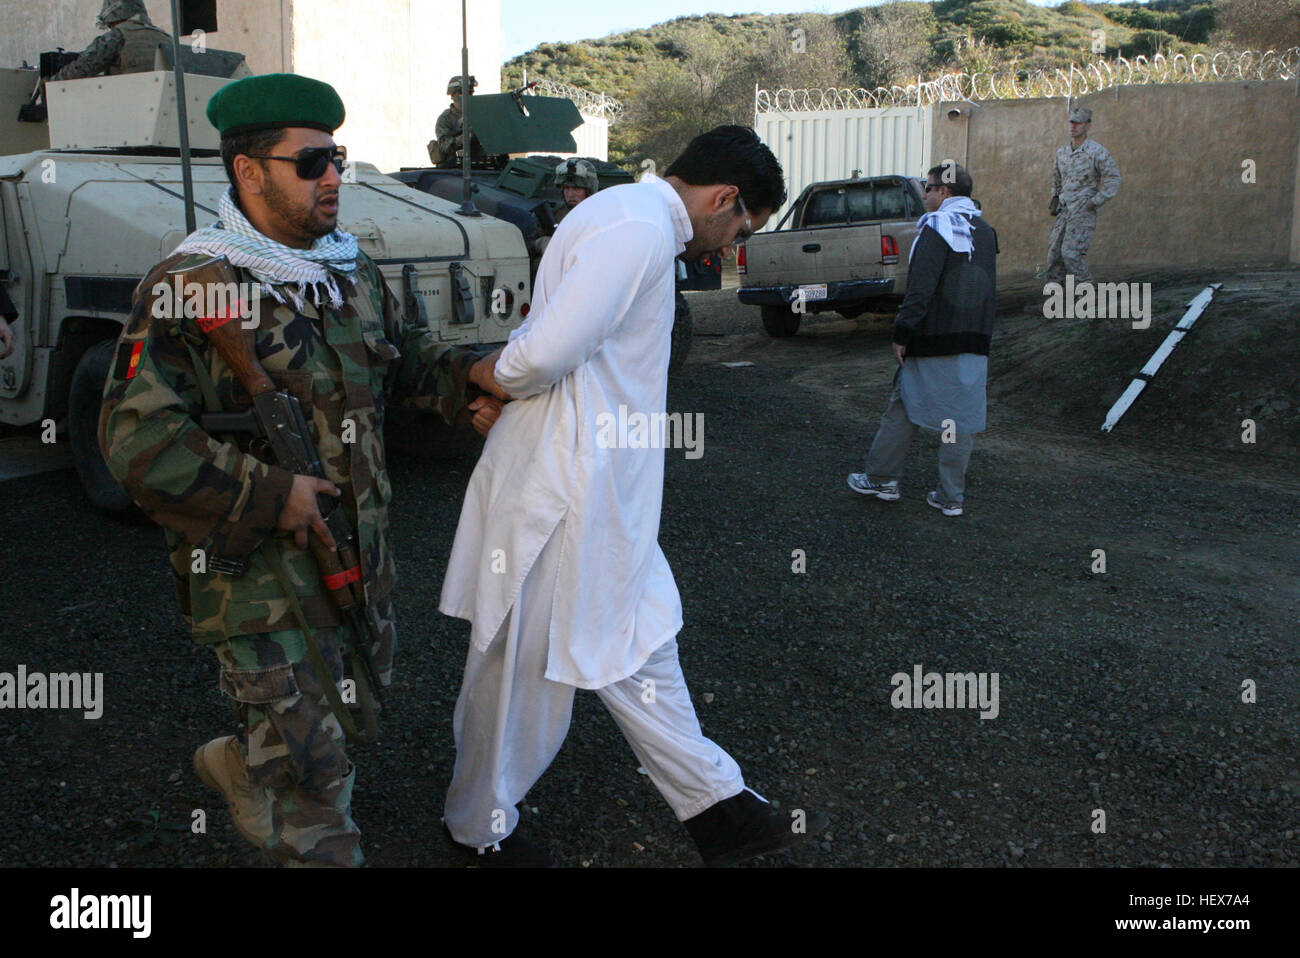 An Afghan National Policeman takes a suspected insurgent role player into custody after a simulated vehicle borne - Stock Image